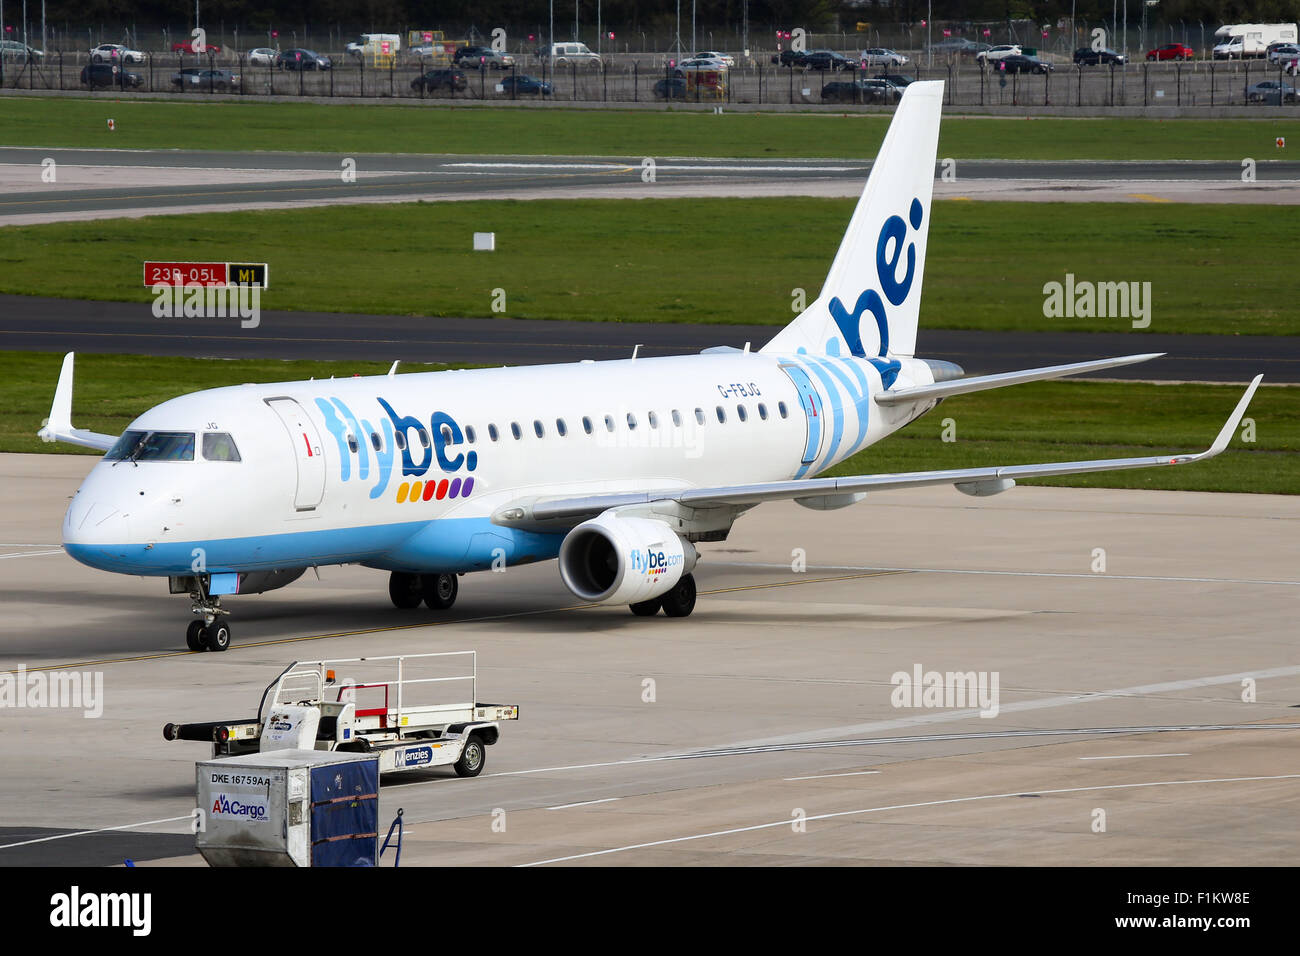 FlyBe Embraer 175 taxis onto stand at Manchester airport. - Stock Image